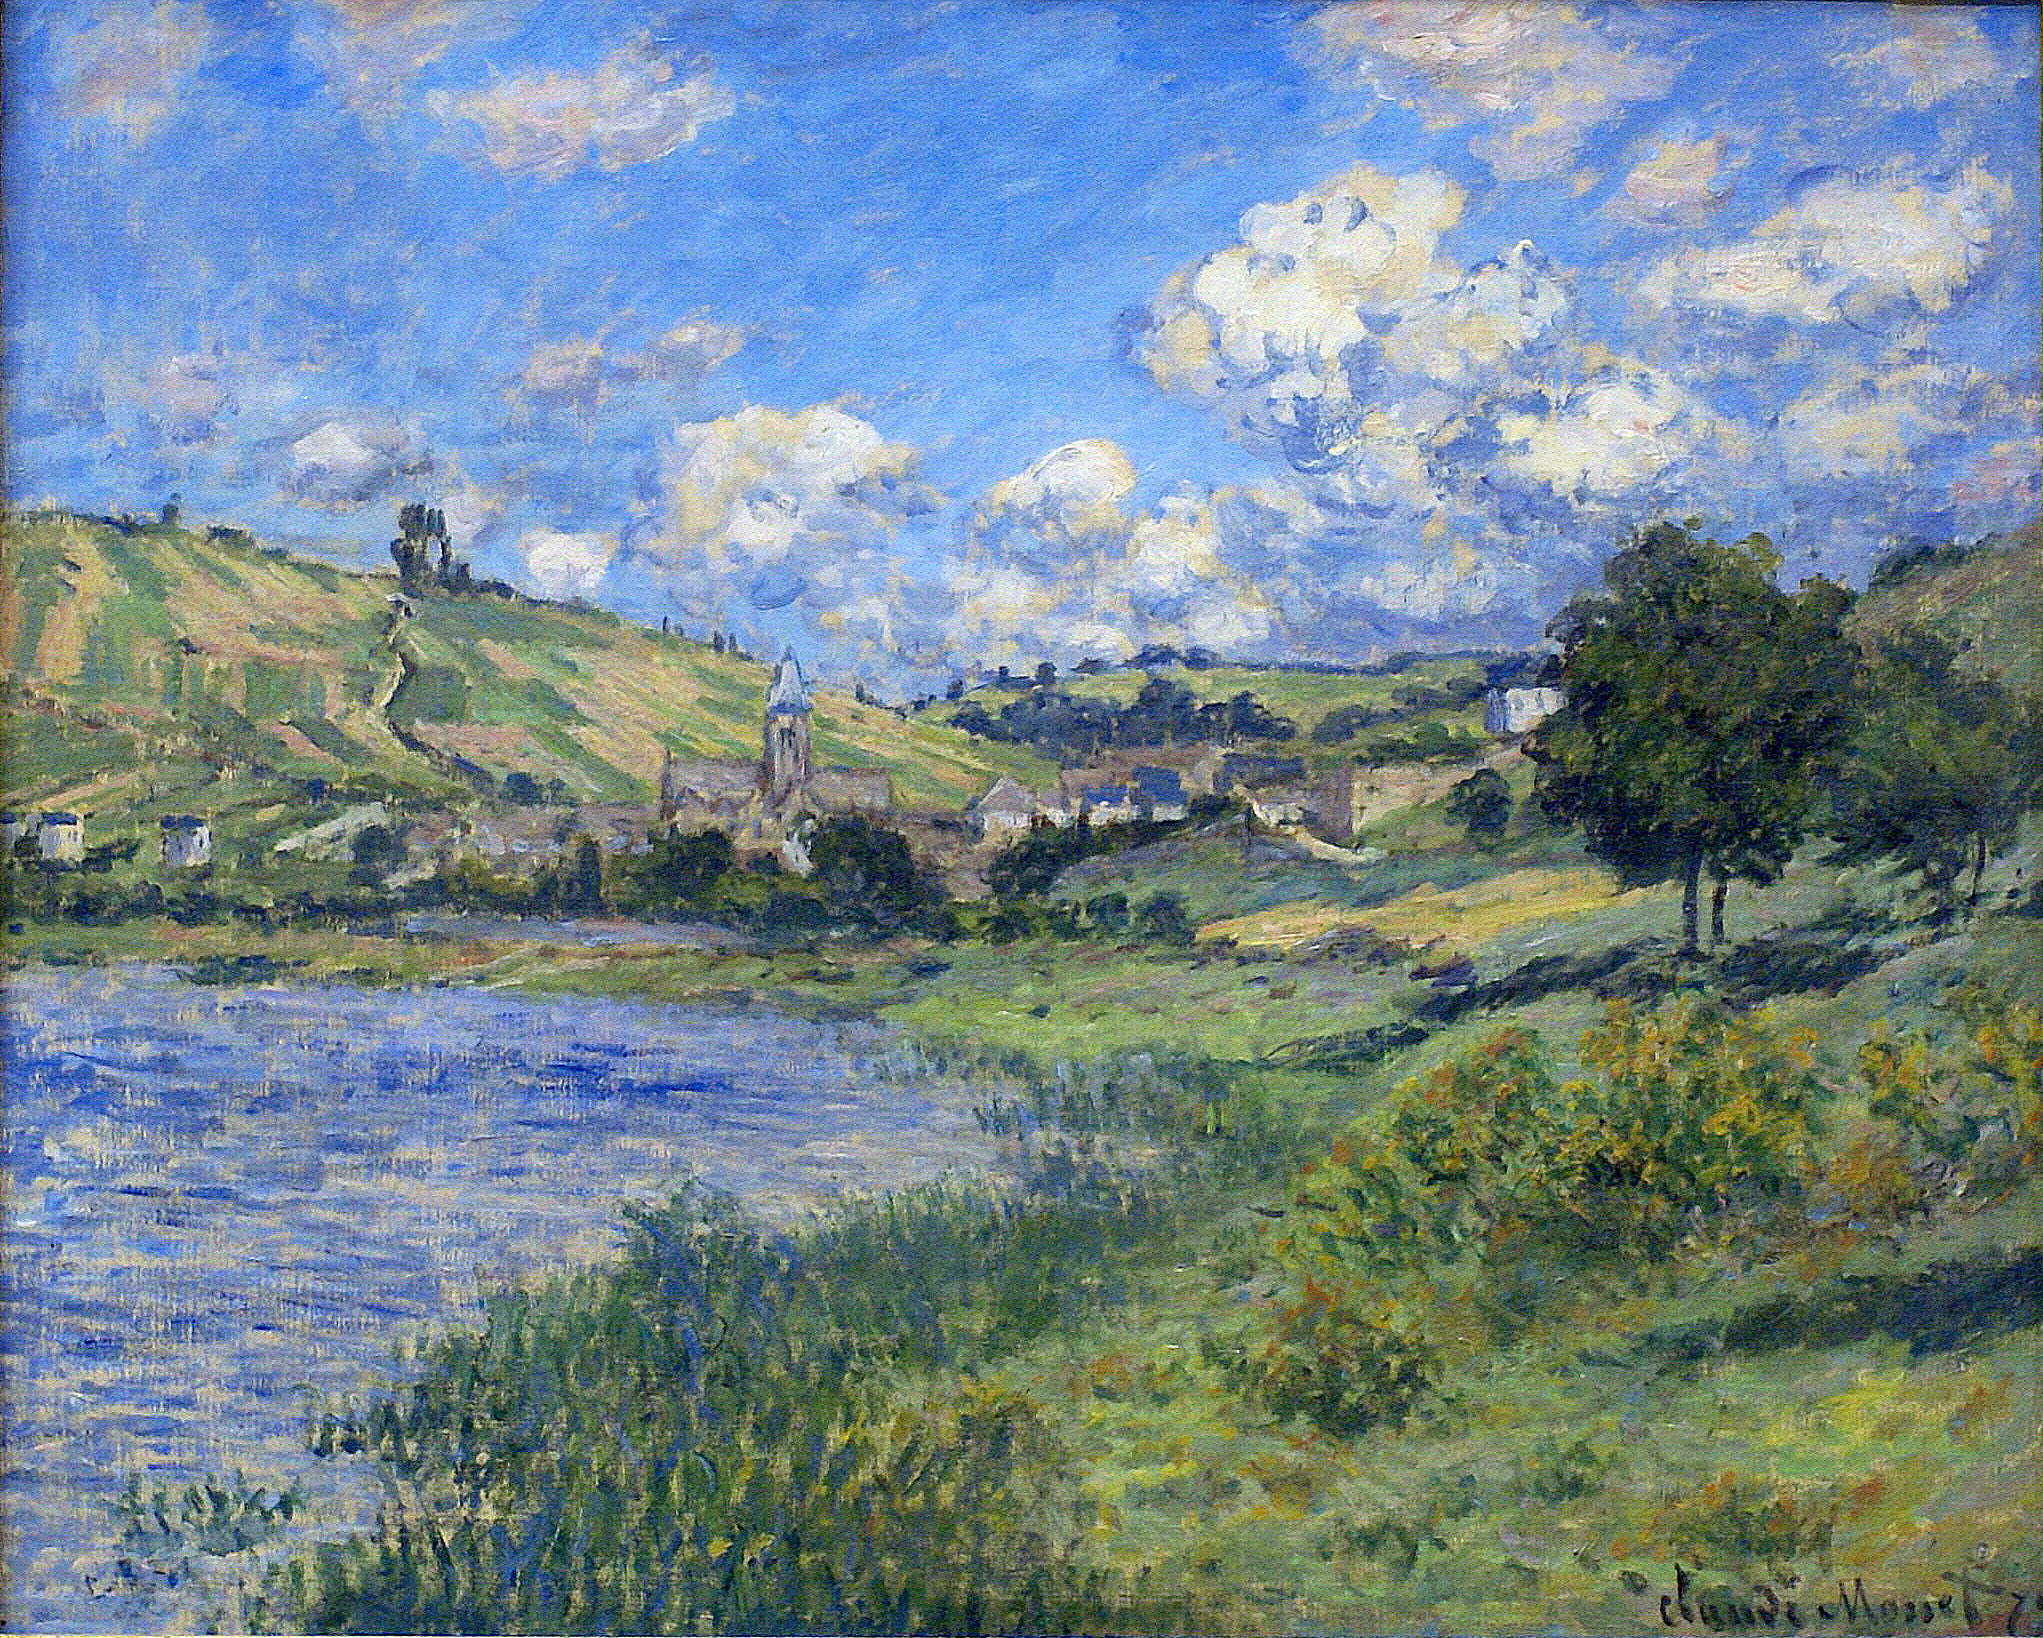 Vetheuil, Paysage by Claude Monet, 1879